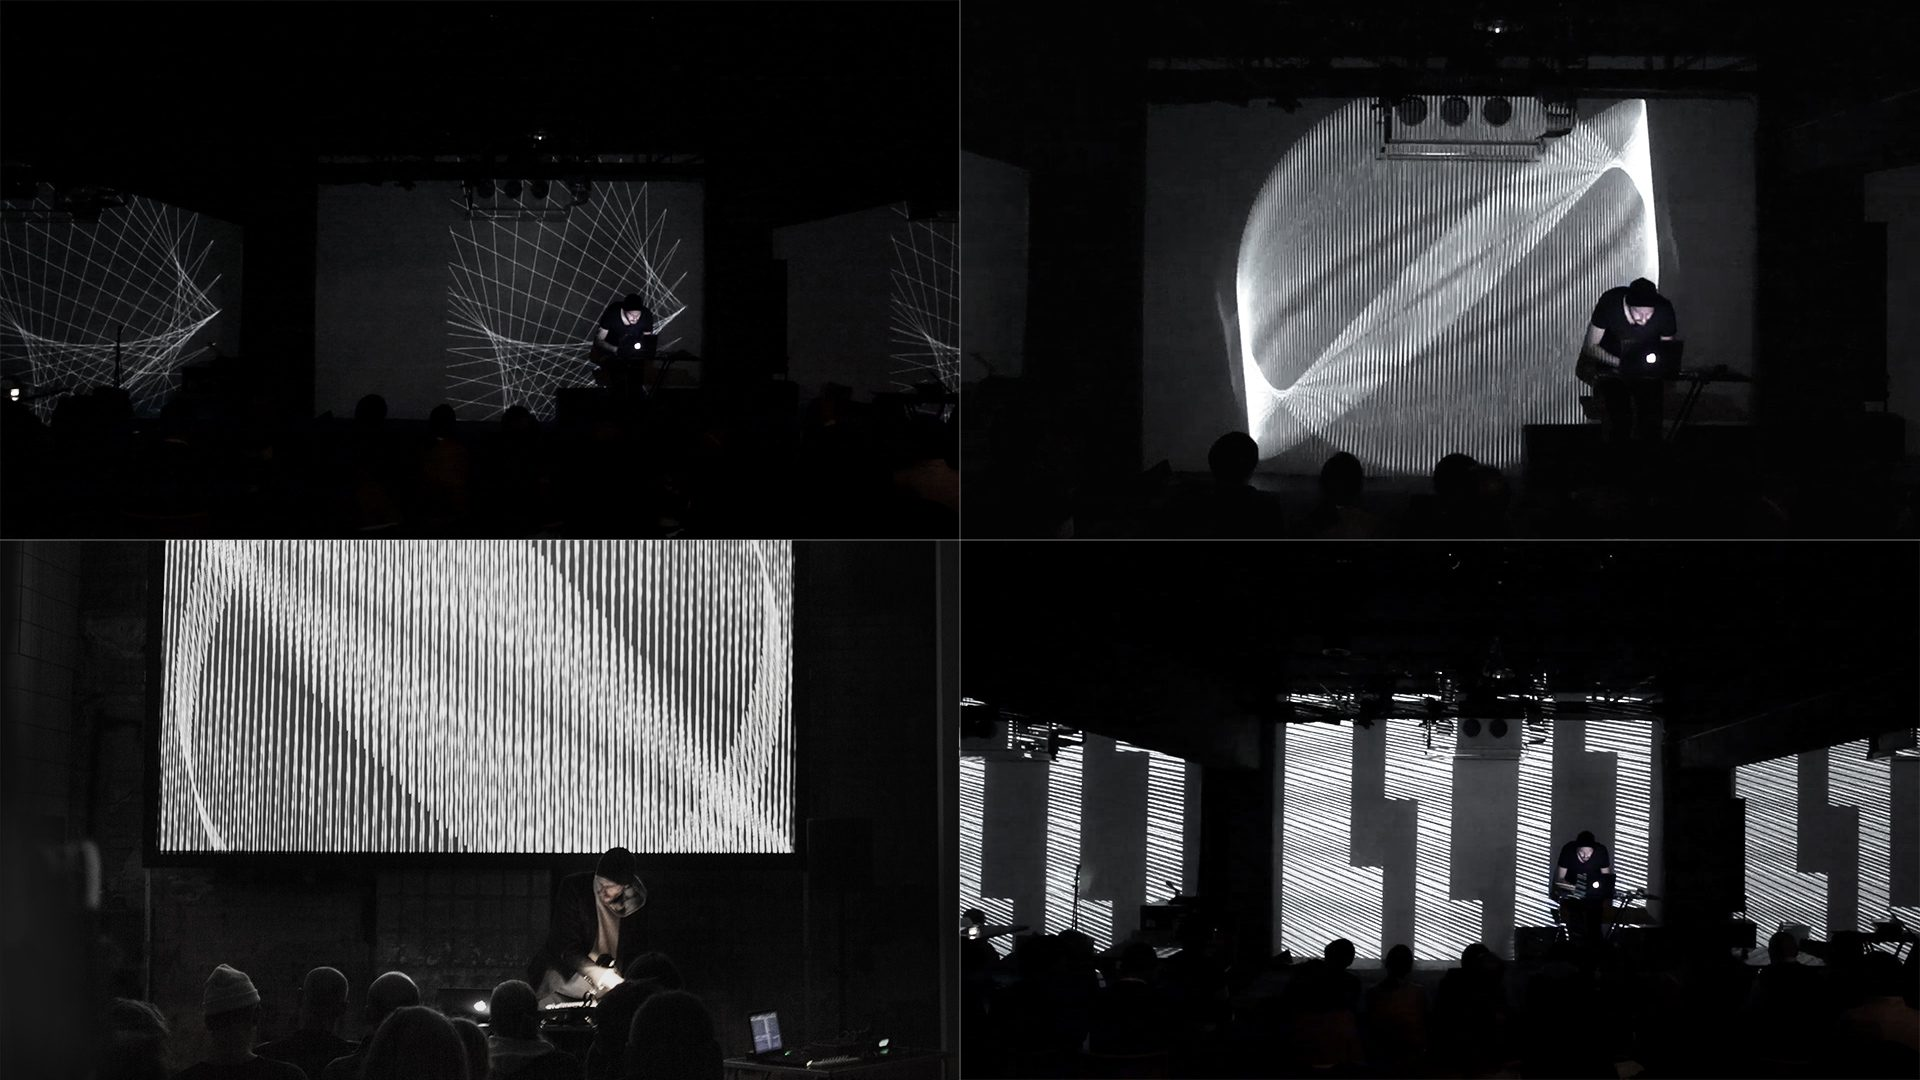 Zwölftonform as an audio-visual performance (Photos and video by Christian Werner)